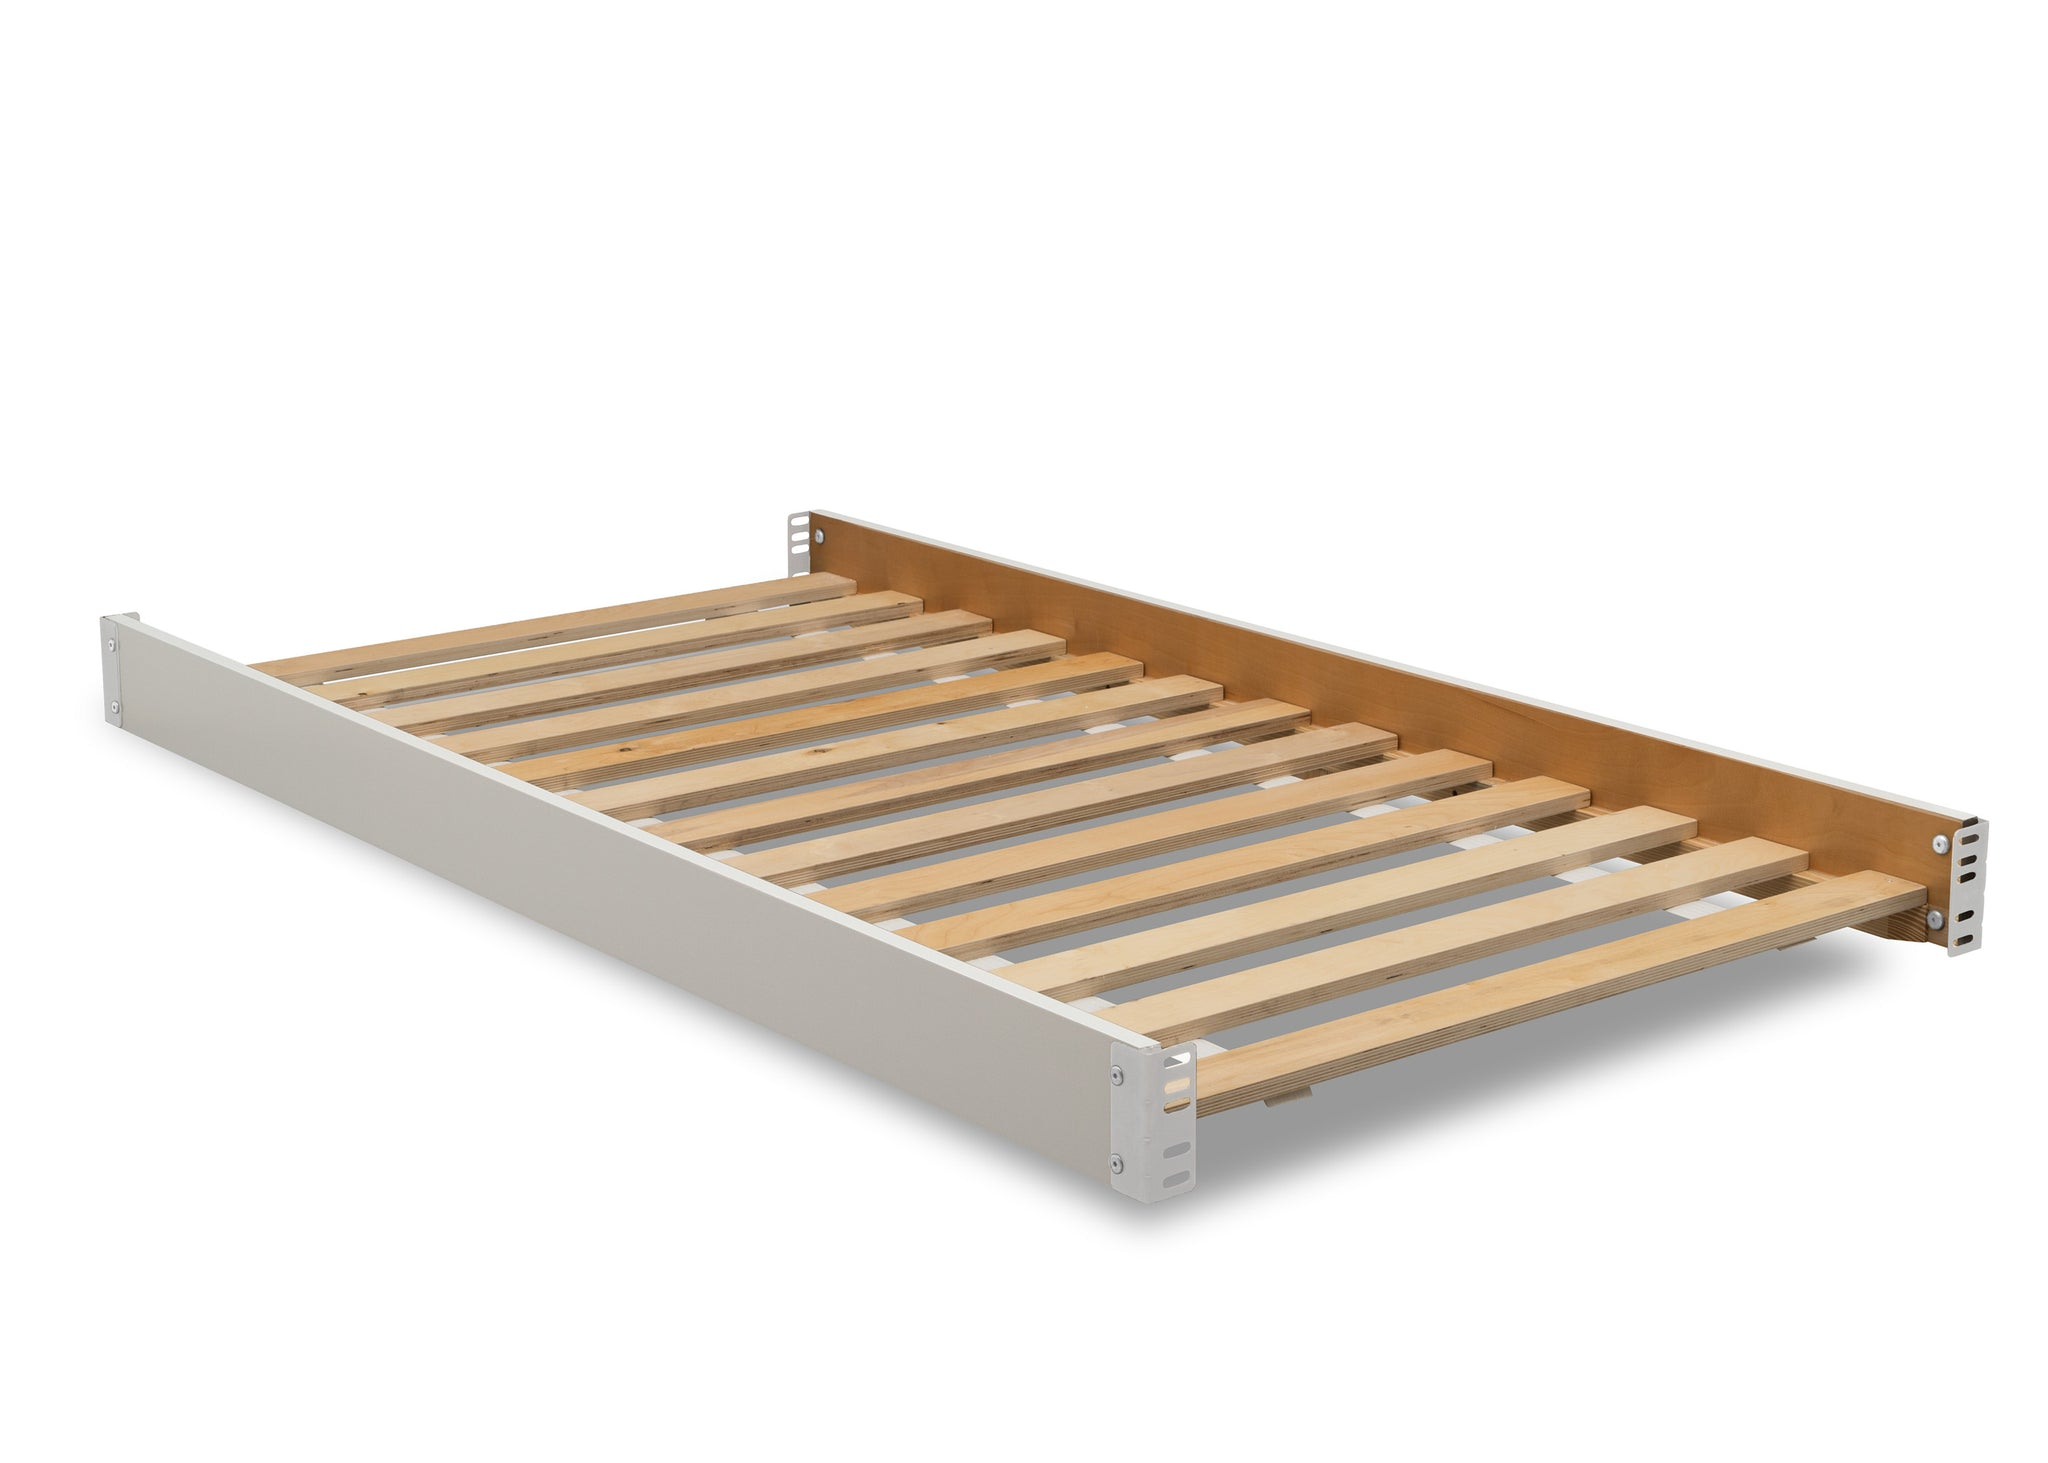 Delta Children Bianca White (130) Twin Size Wood Bed Rails (W0090), Right Silo View